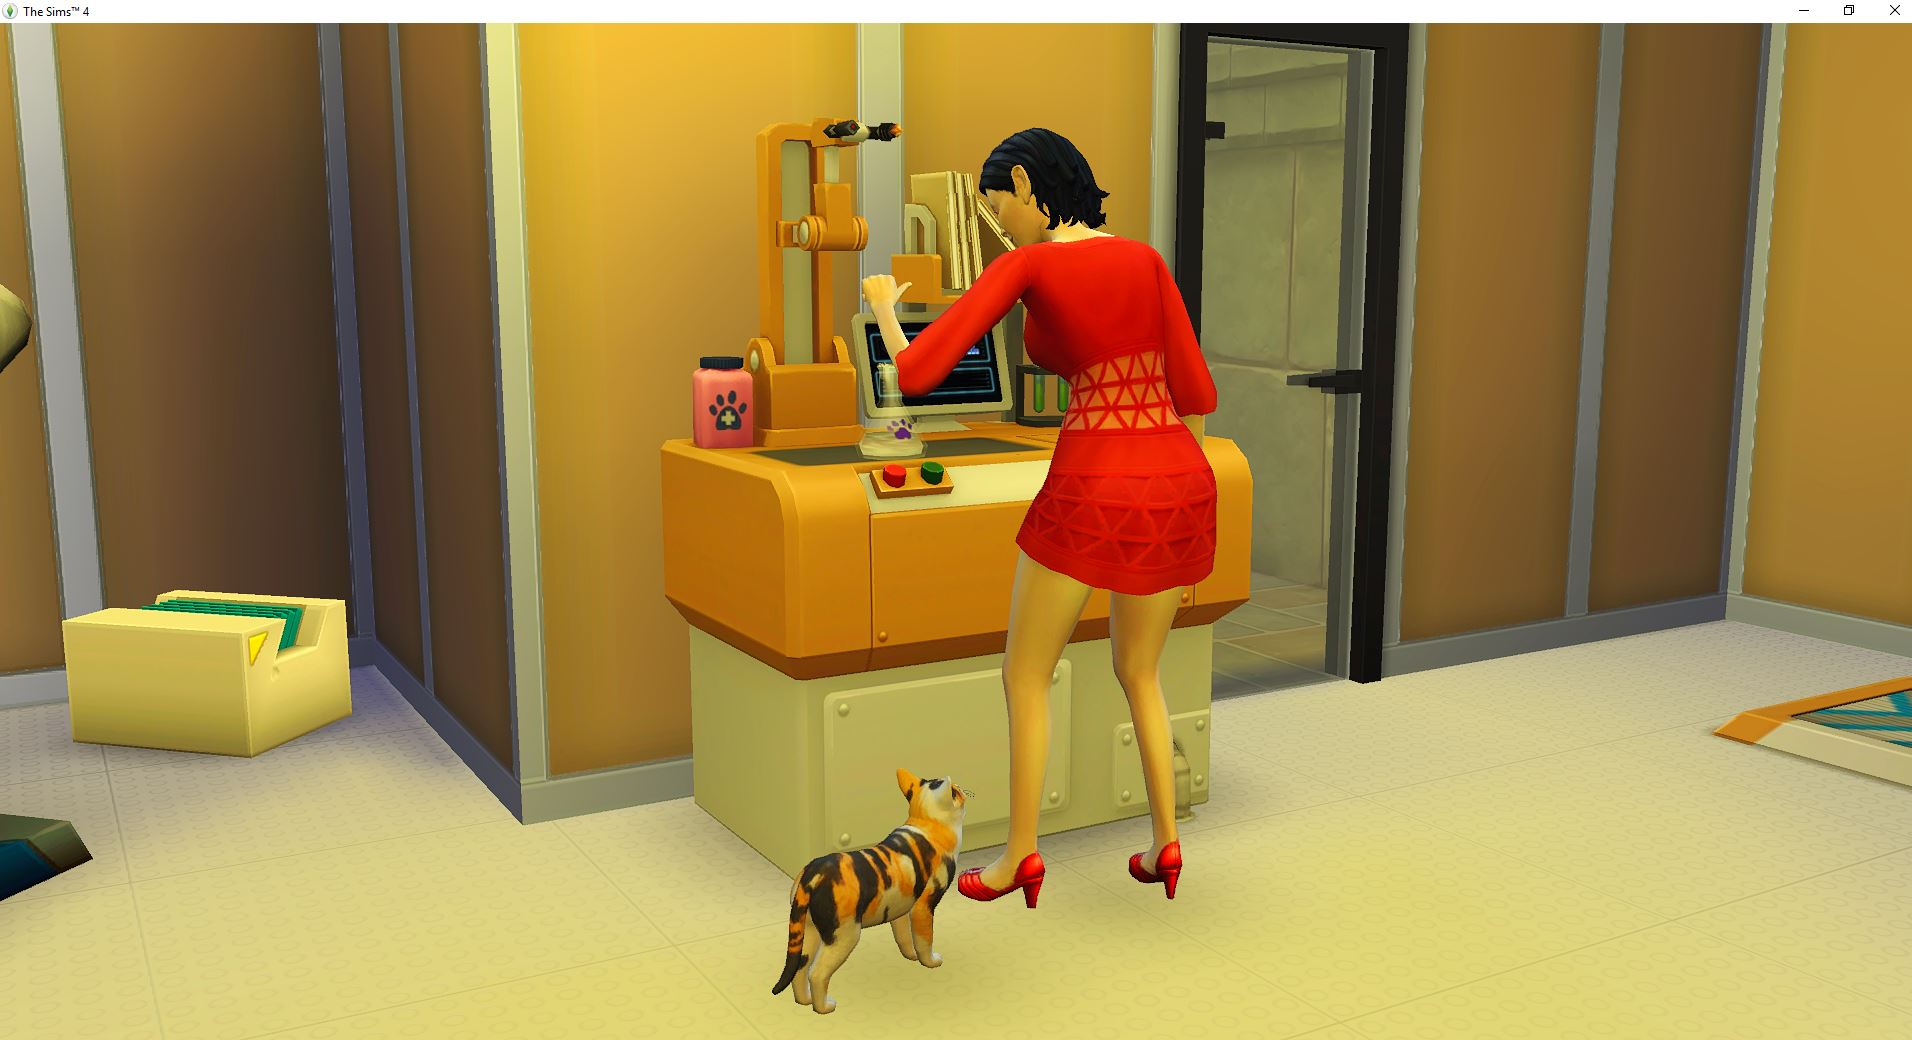 2019-01-11 21_00_02-The Sims™ 4